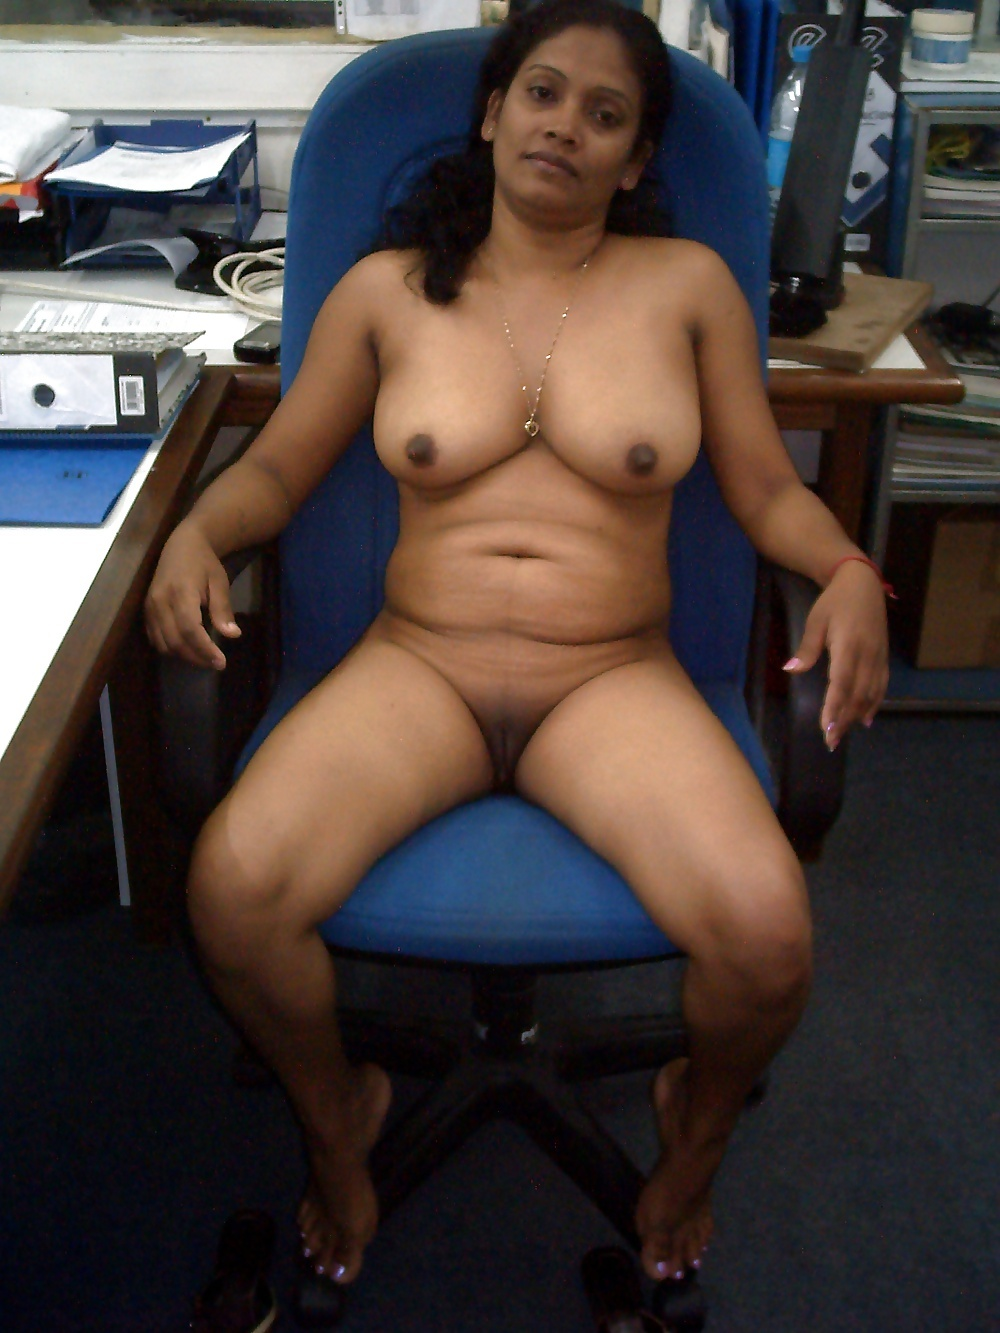 Middle aged women naked by themselves